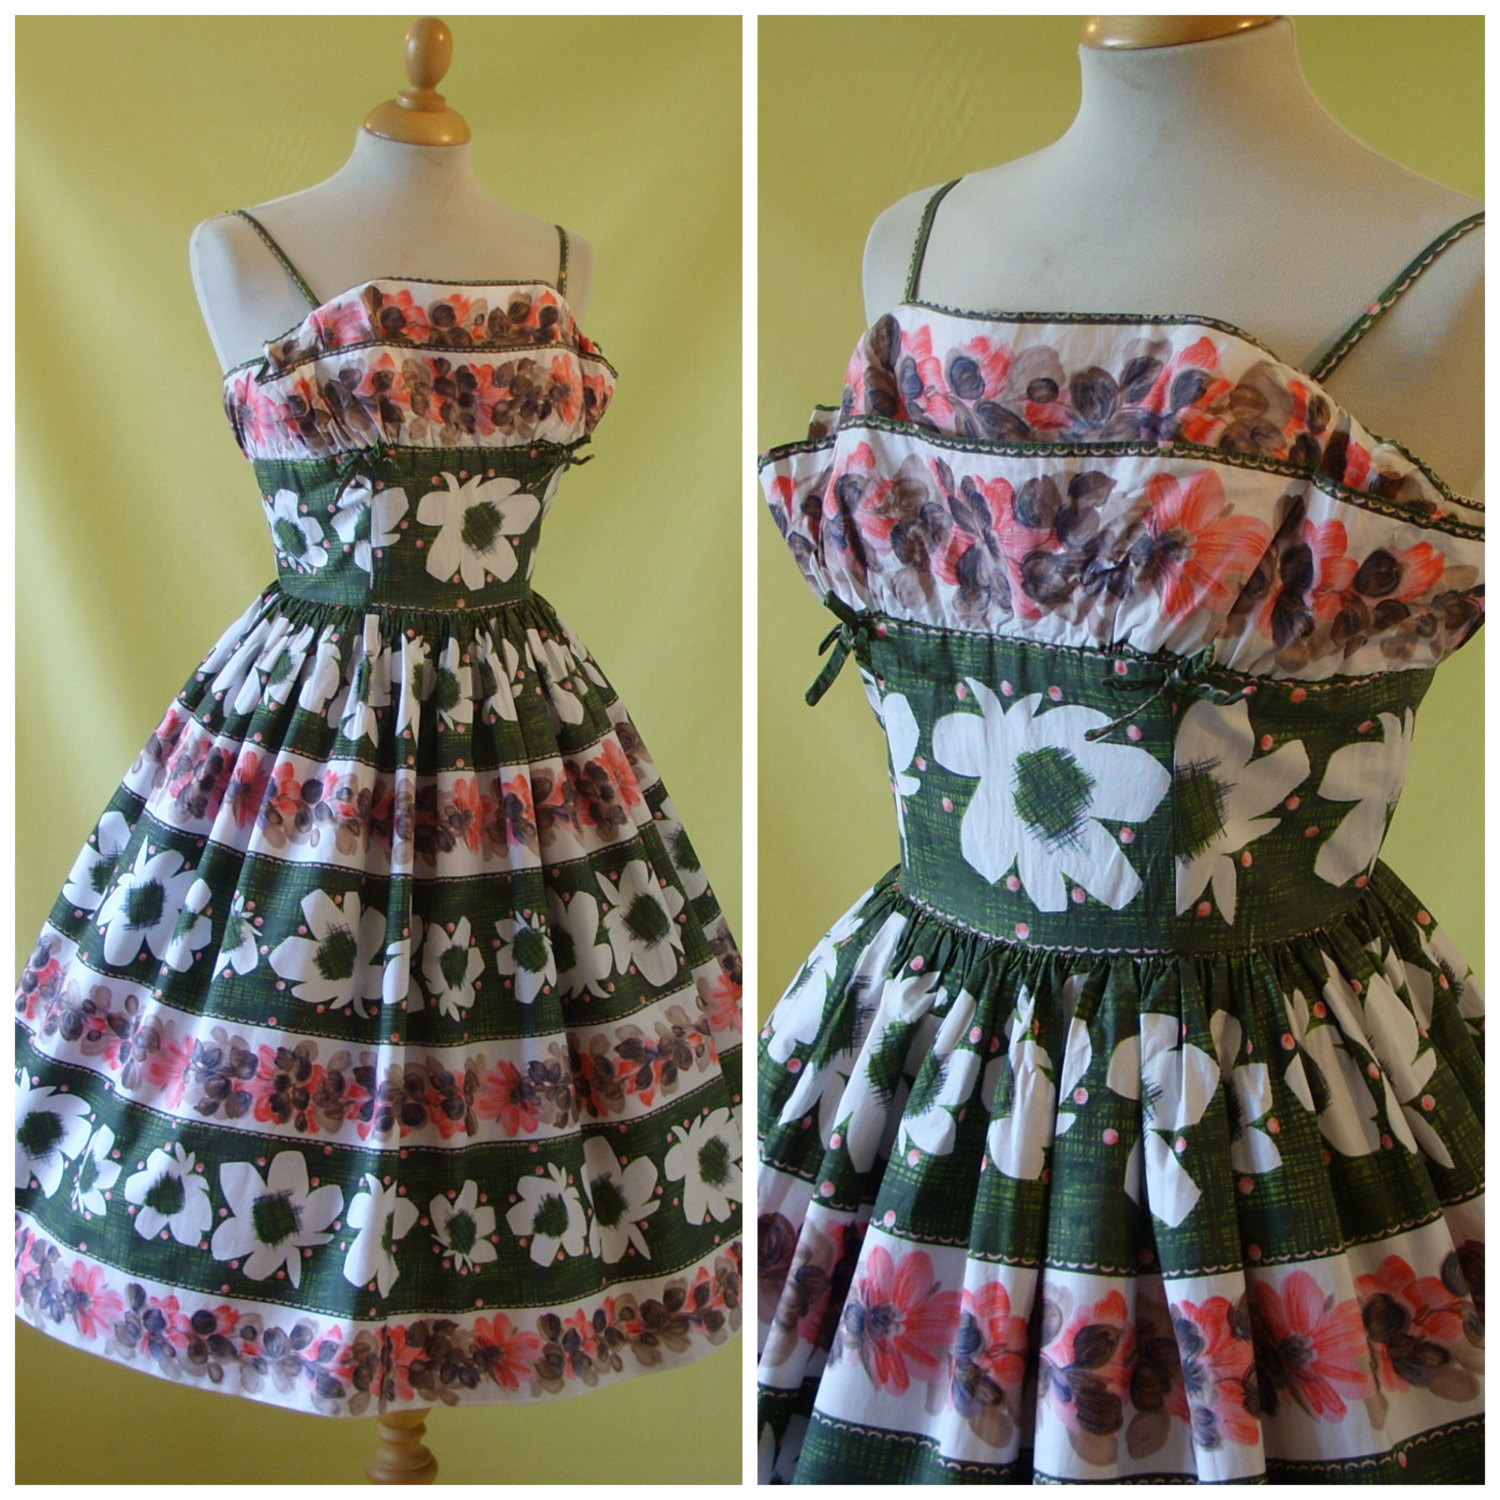 Another gorgeous Horrockses dress on Etsy